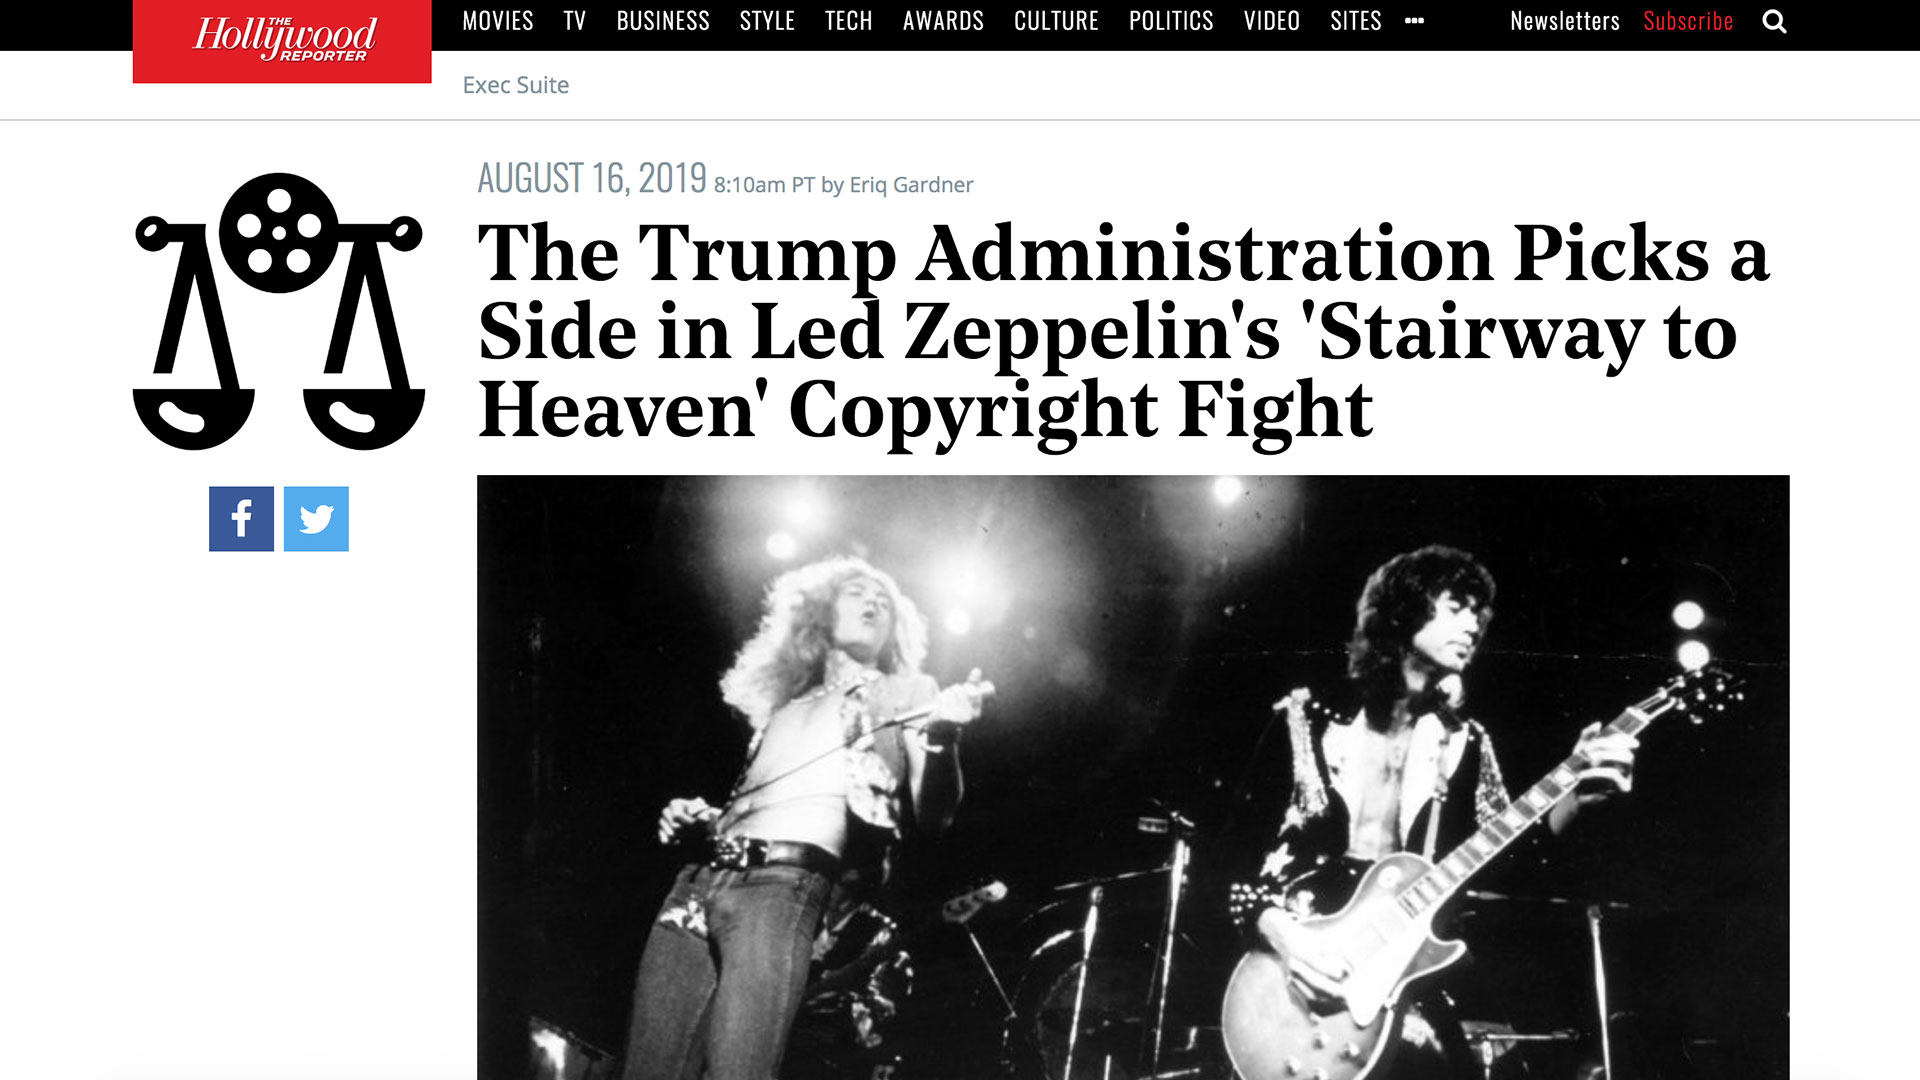 Fairness Rocks News The Trump Administration Picks a Side in Led Zeppelin's 'Stairway to Heaven' Copyright Fight